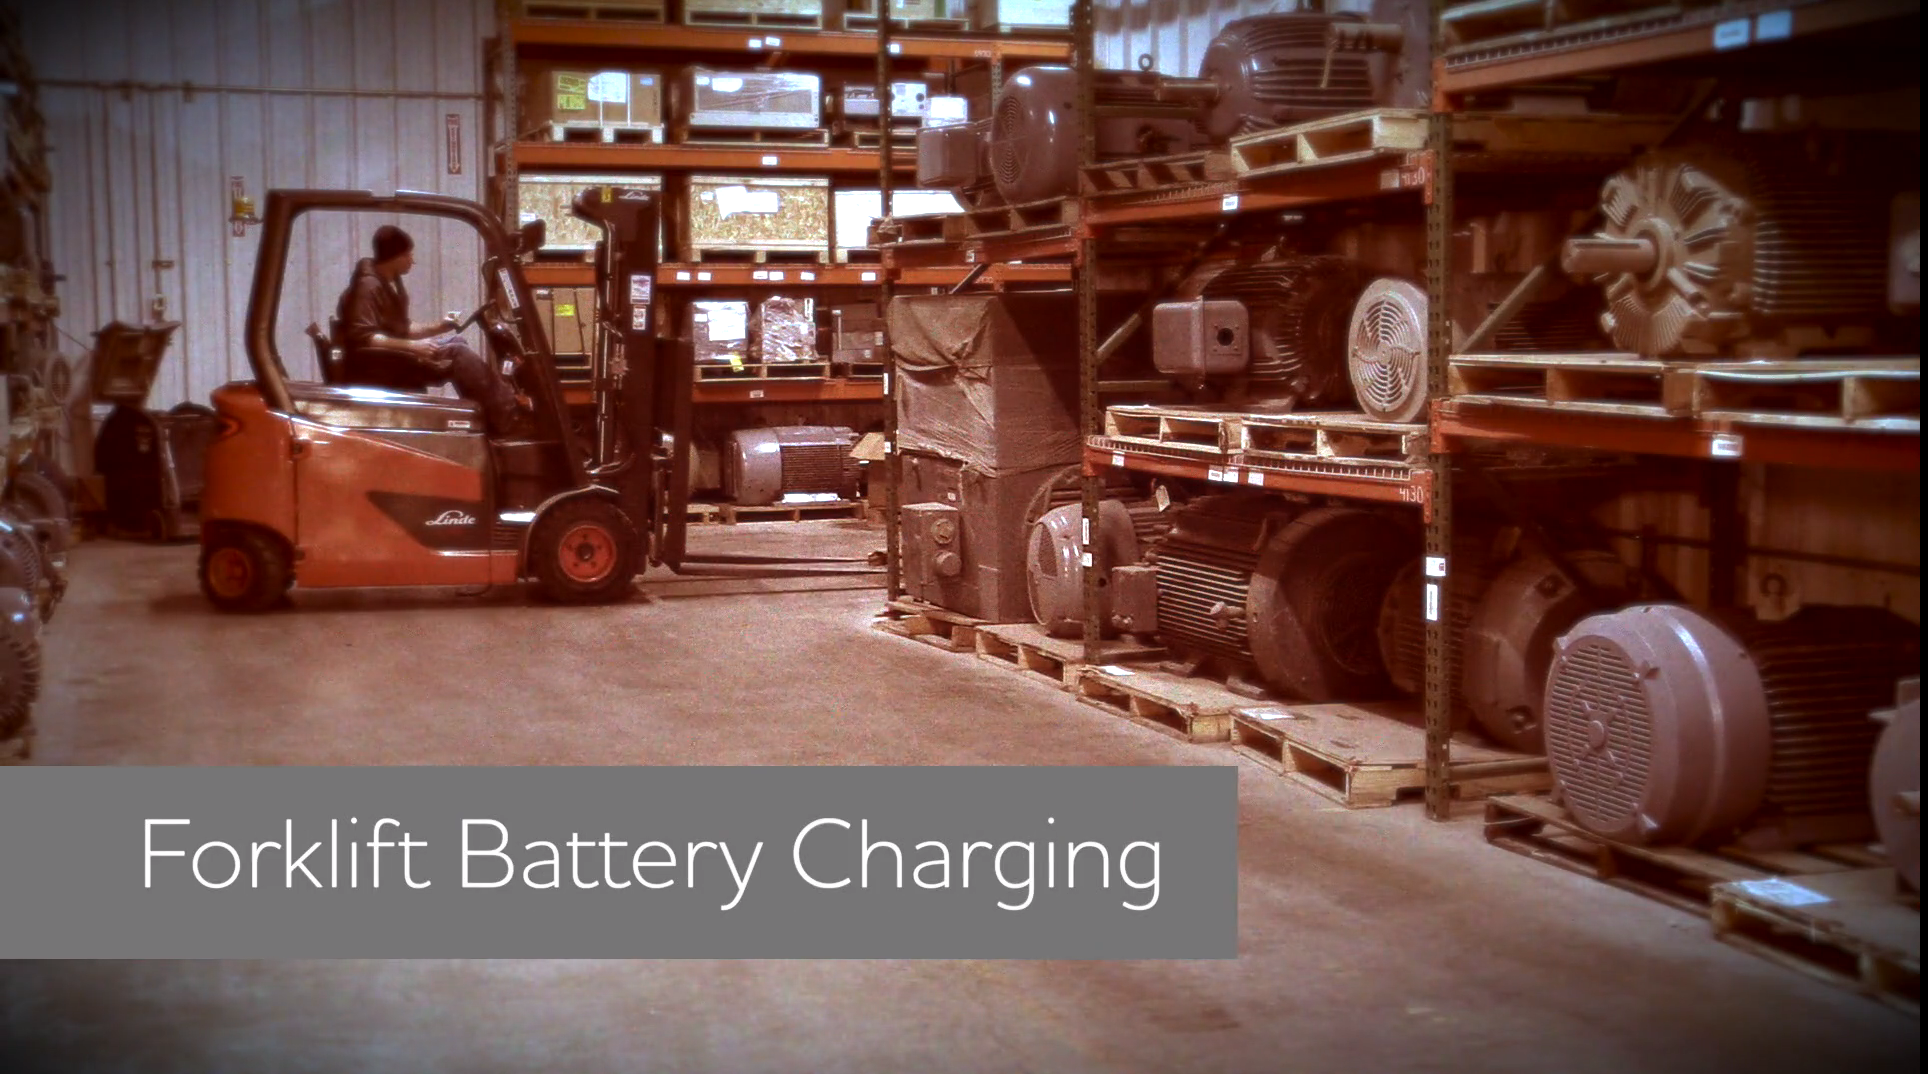 Forklift Battery Charging